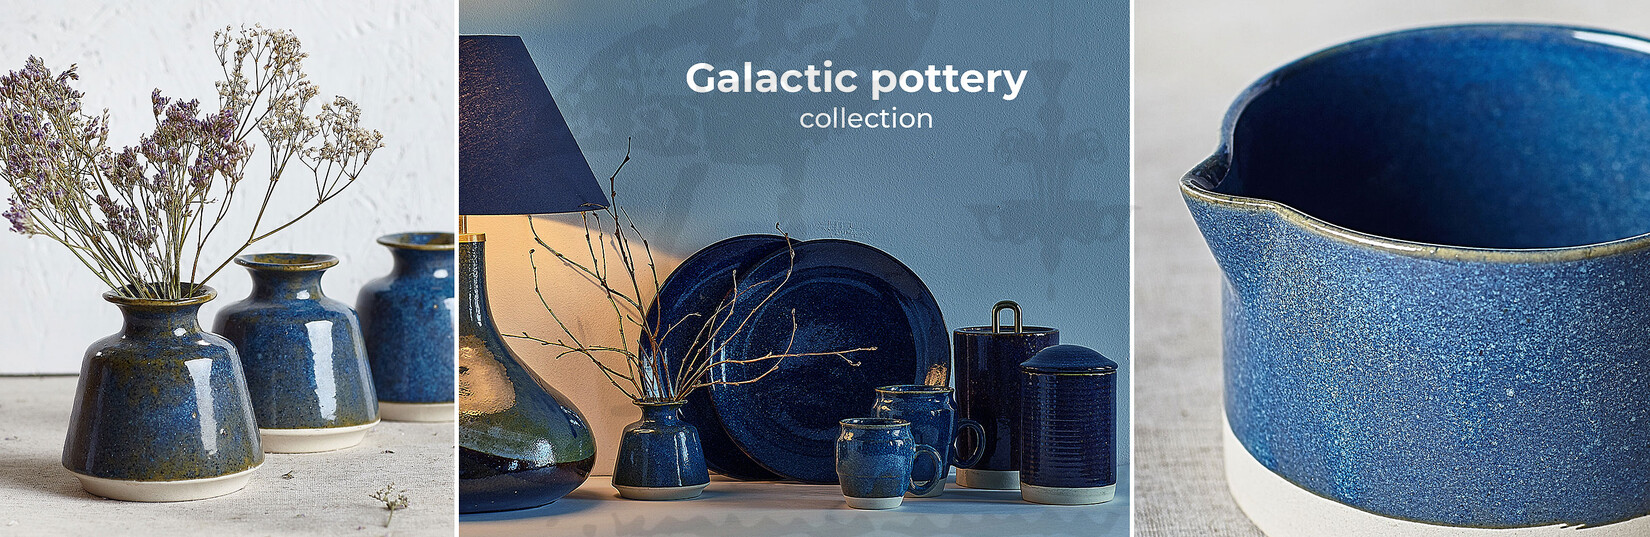 Galactic pottery